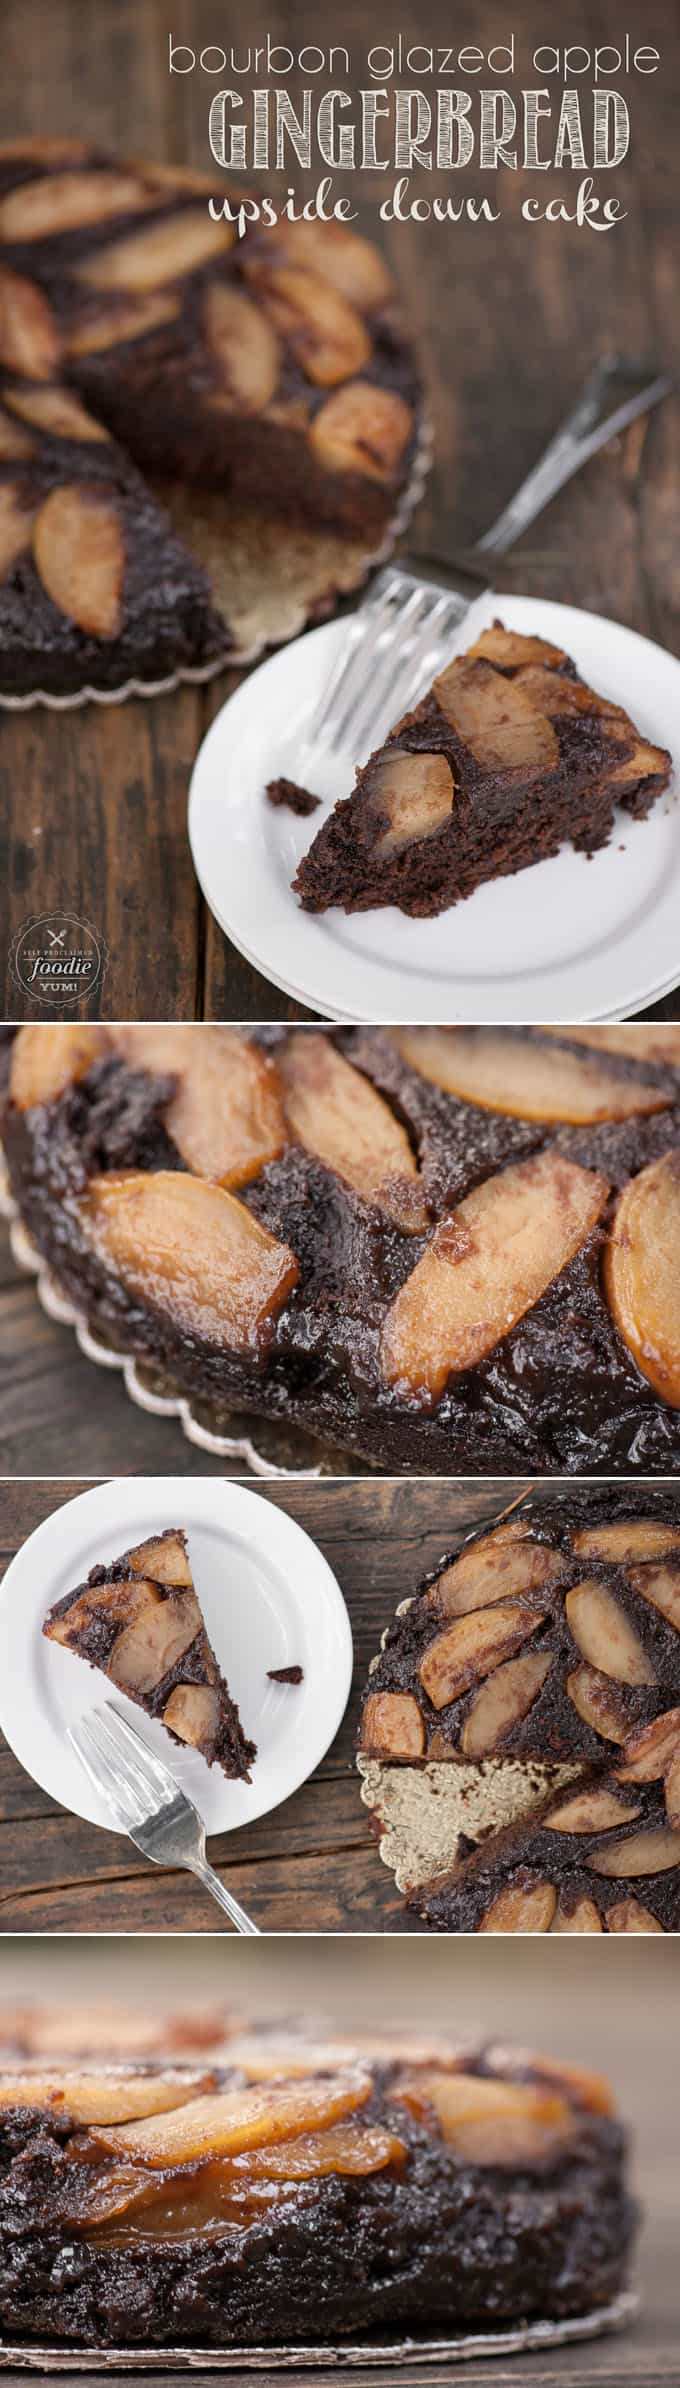 I can't think of a better rustic dessert to serve during the holidays than this delicious Bourbon Glazed Apple Gingerbread Upside Down Cake.